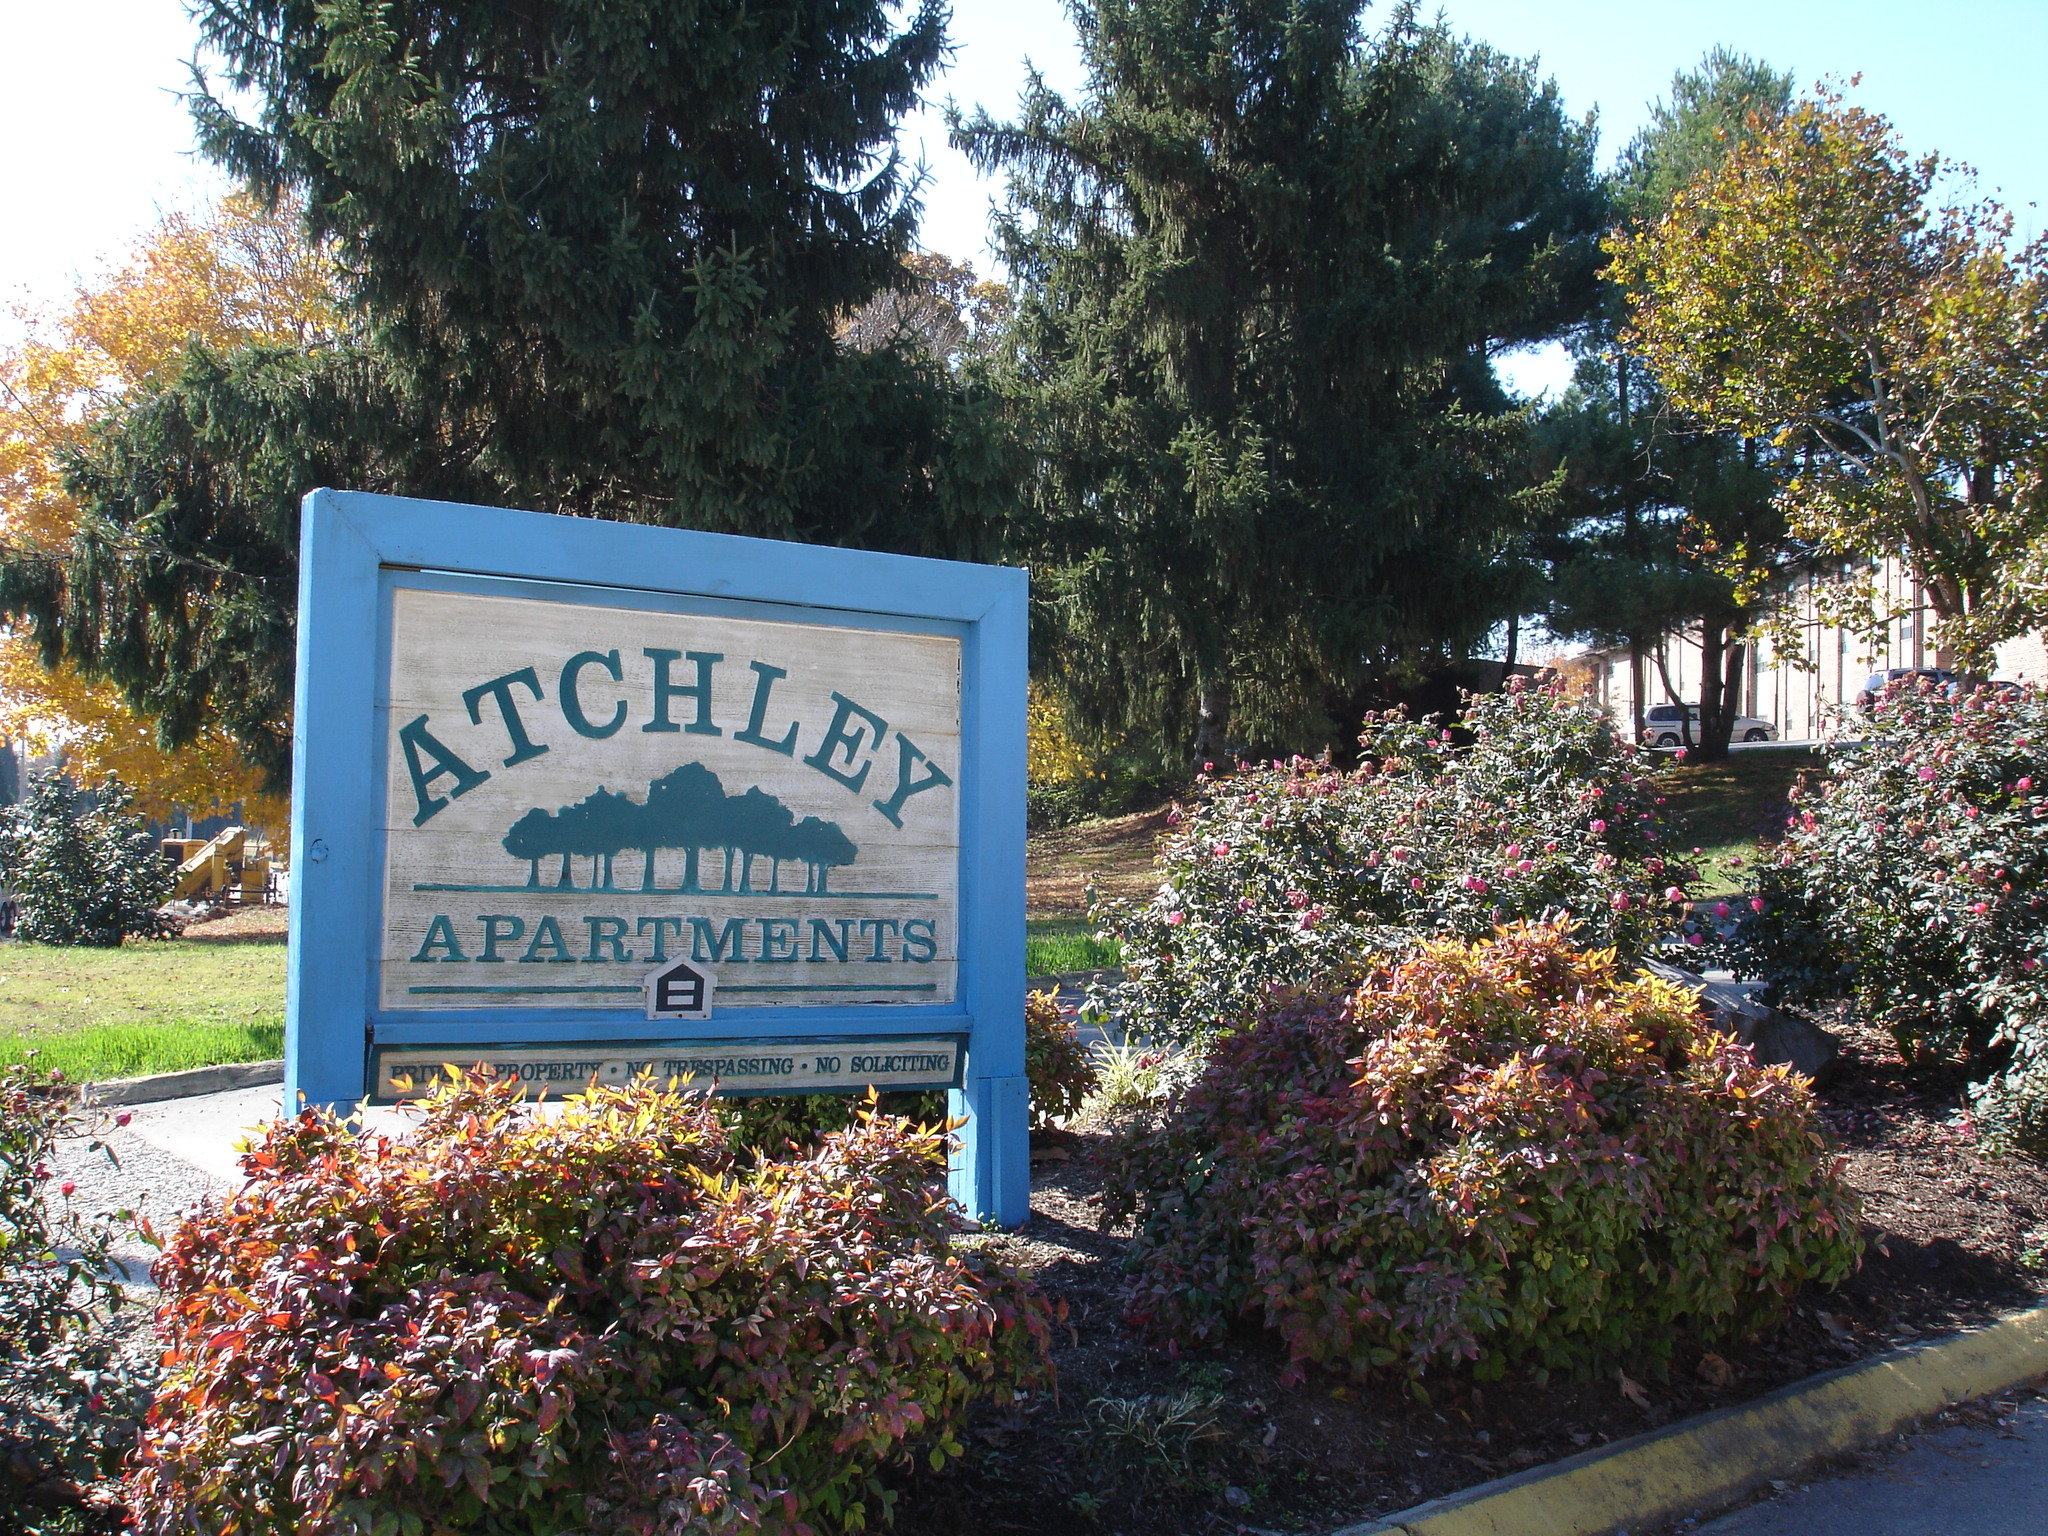 ATCHLEY APARTMENTS